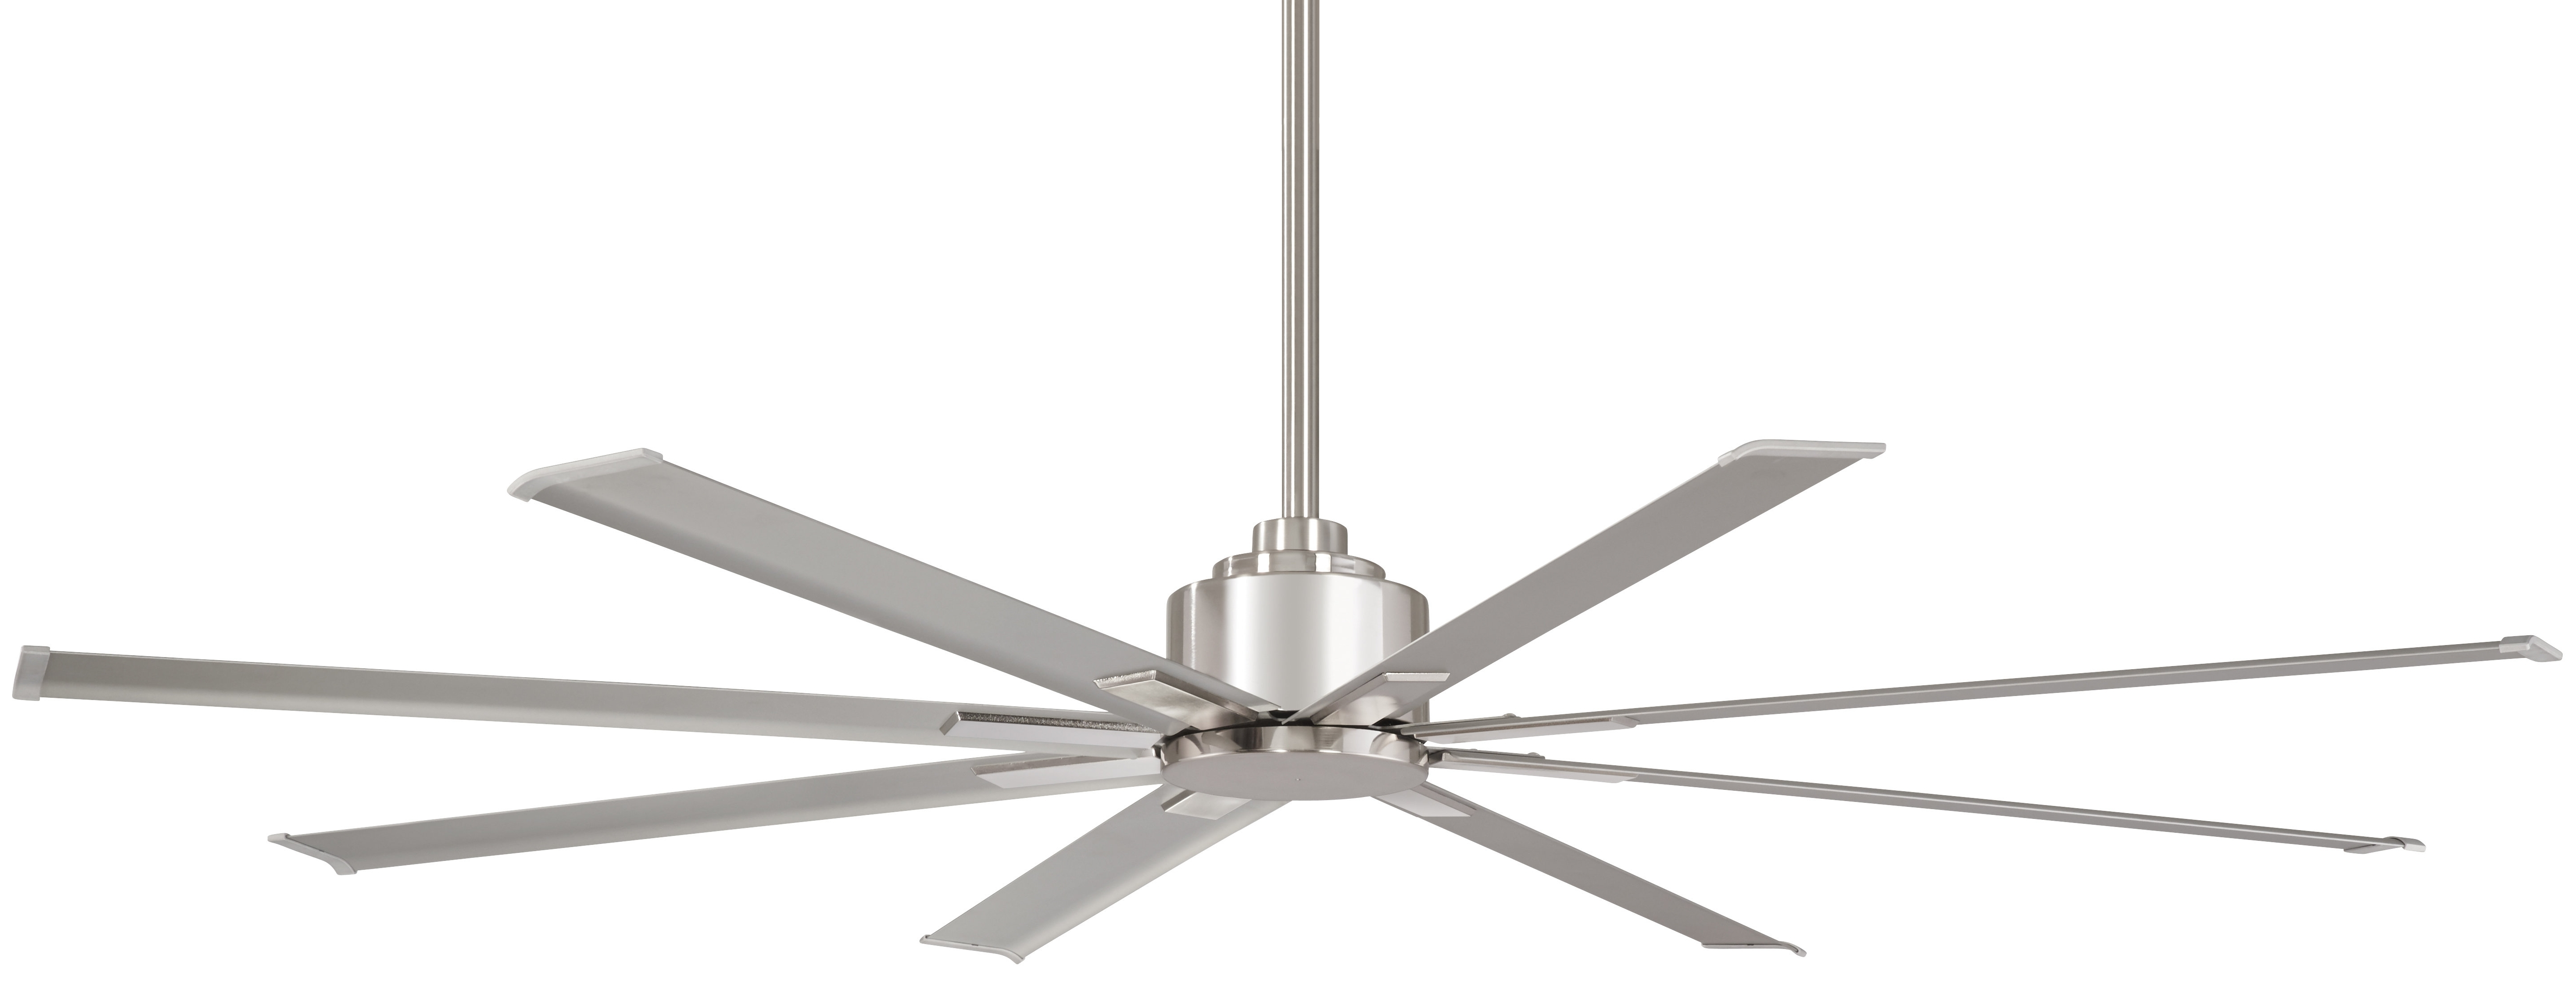 "Outdoor Ceiling Fans With High Cfm Inside Widely Used Minka Aire 65"" Xtreme 8 Blade Outdoor Ceiling Fan With Remote (Gallery 1 of 20)"